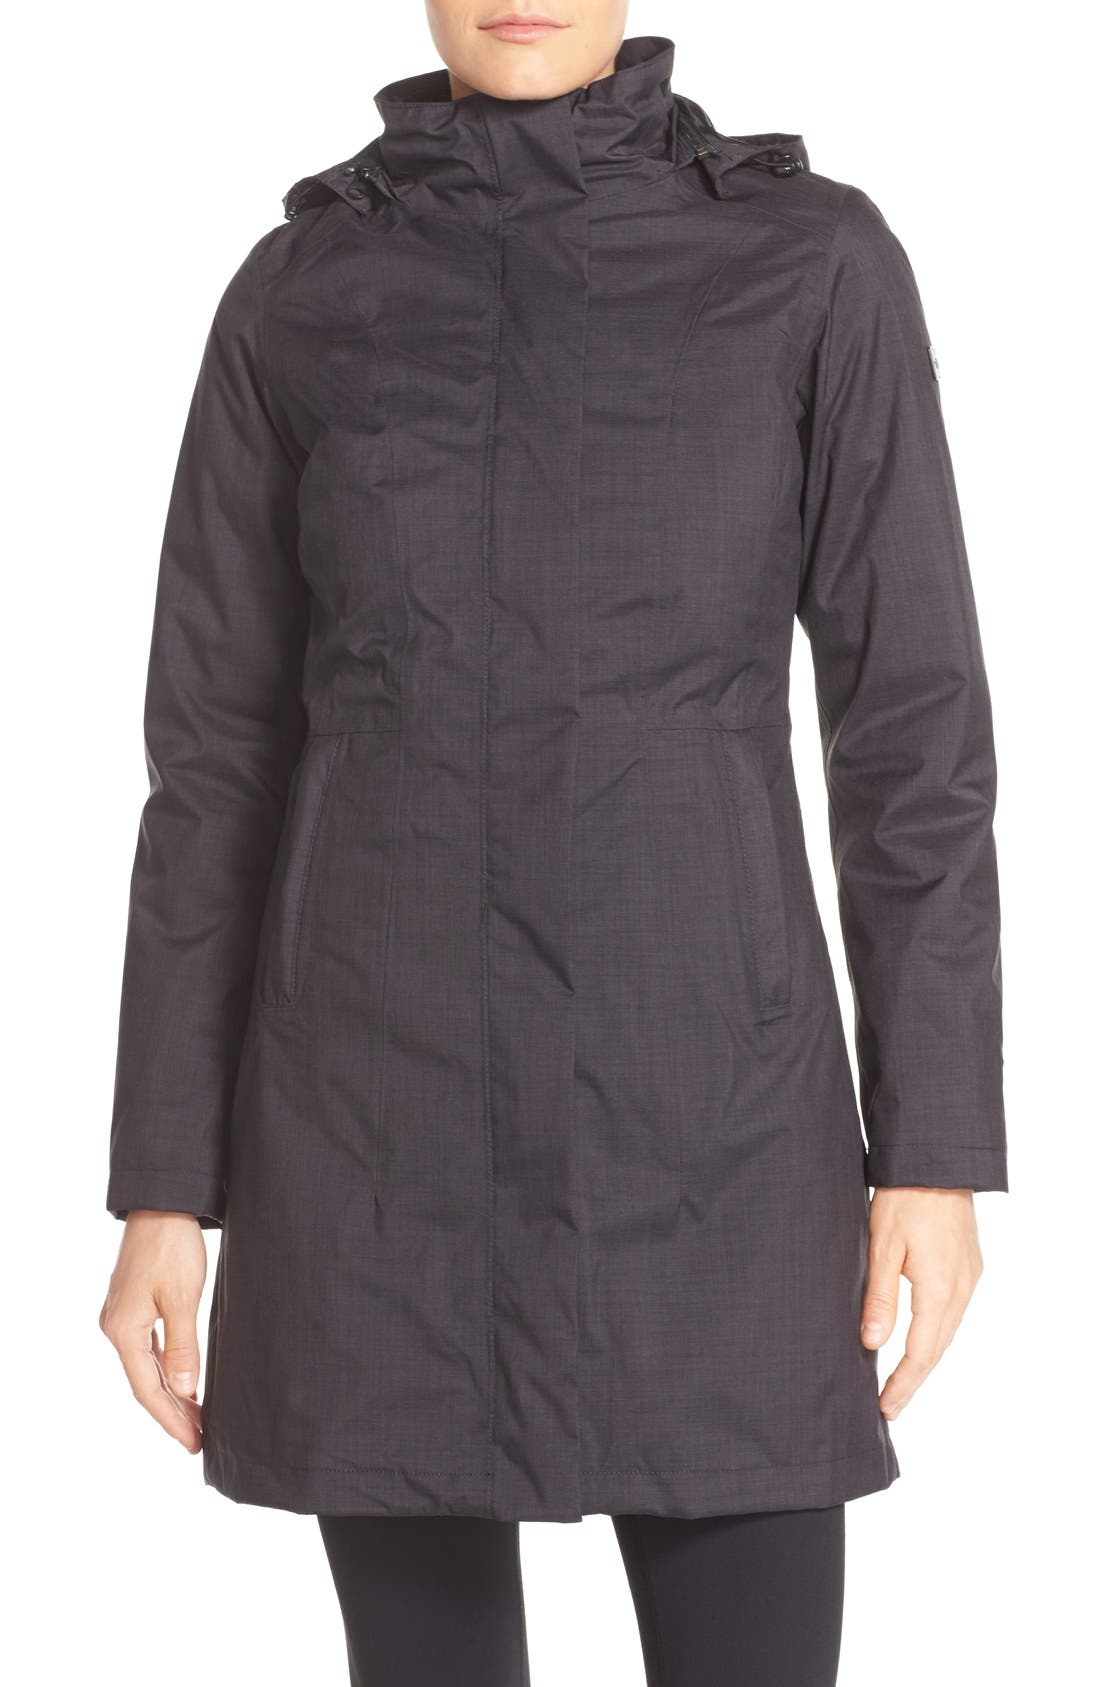 Alternate Image 1 Selected - The North Face 'Zola' 3-in-1 TriClimate® Waterproof Jacket